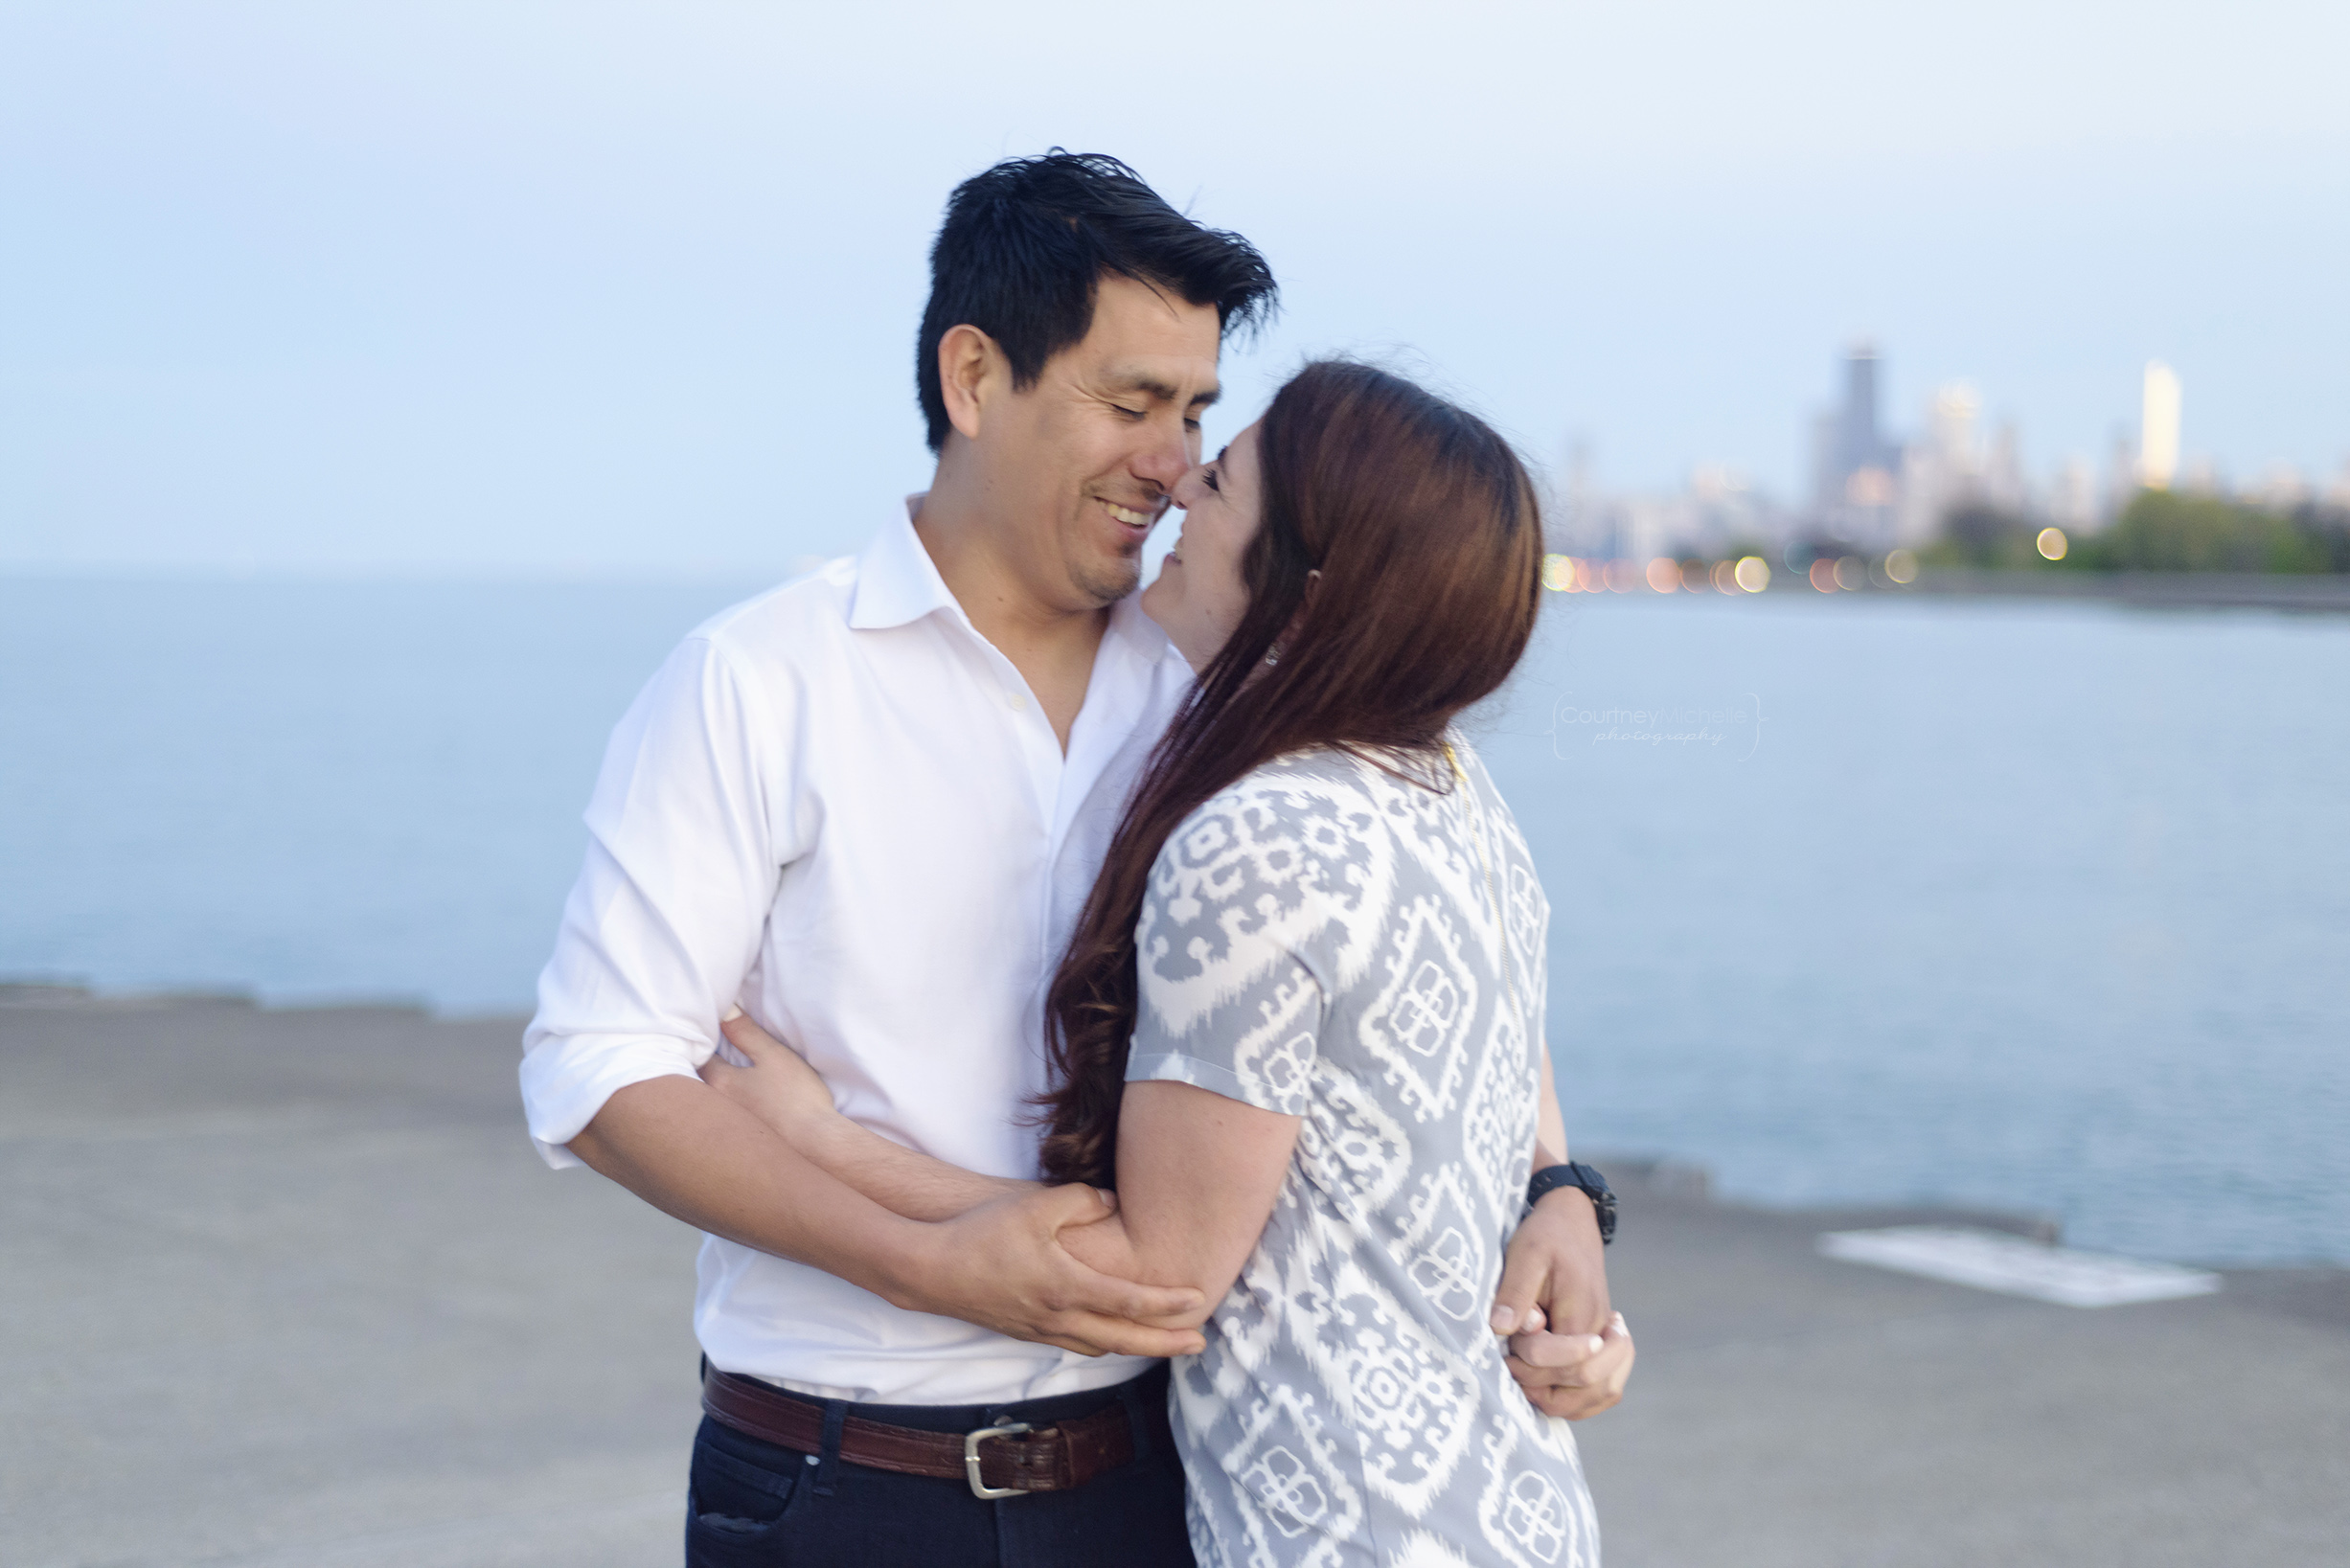 belmont-harbor-chicago-skyline-chicago-engagement-photography-by-courtney-laper©COPYRIGHTCMP-edit-1468.jpg